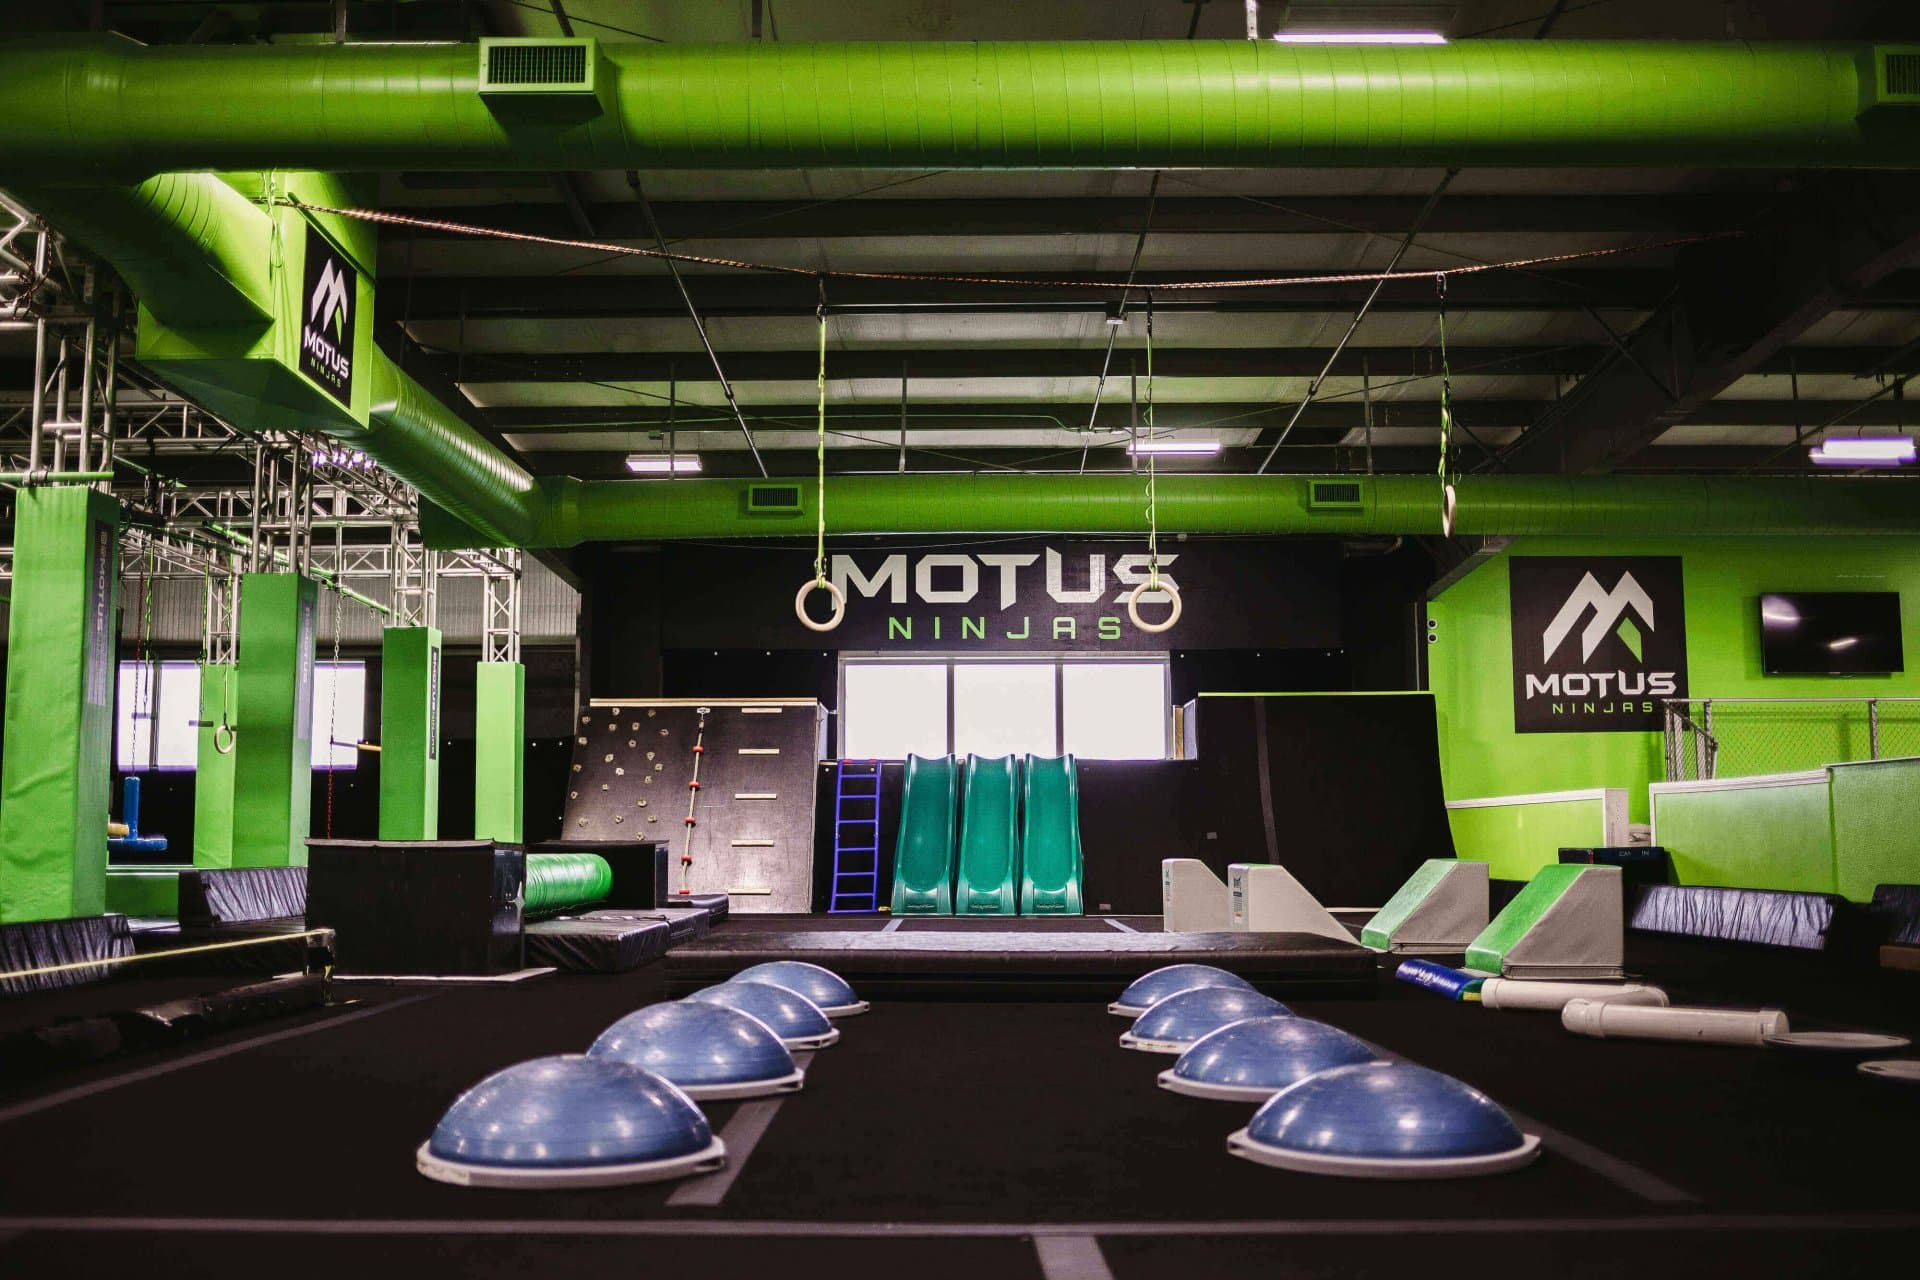 Motus course obstacles